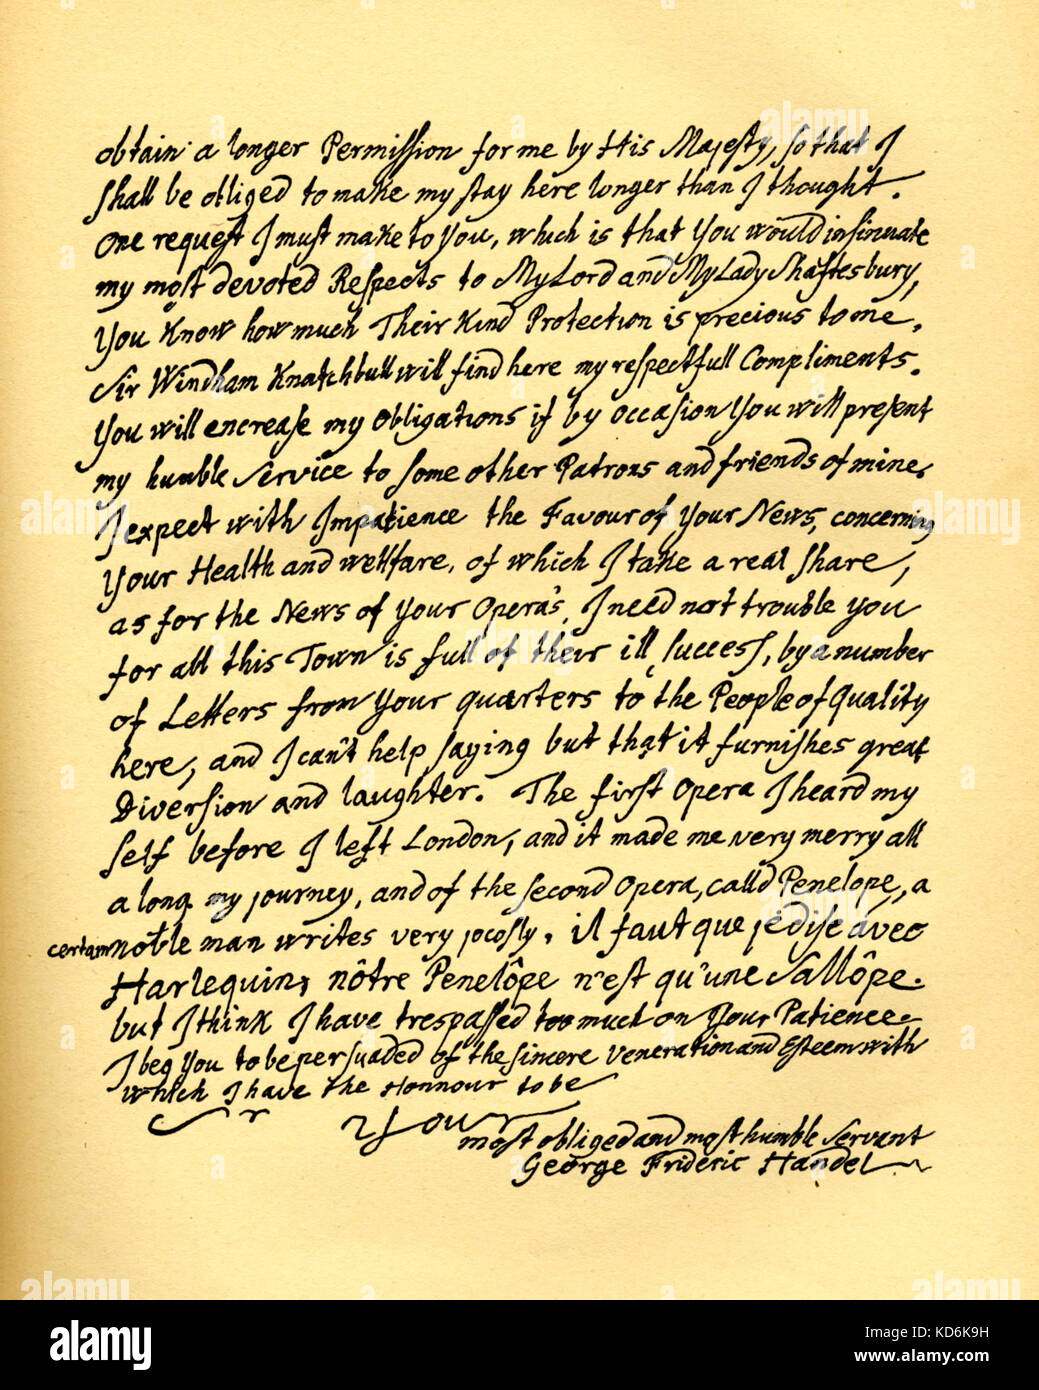 Handels Letter From Dublin To Charles Jennens Who Selected Words From Isiah In The Bible For Messiah Oratorio Words Set To Music Before He Left England